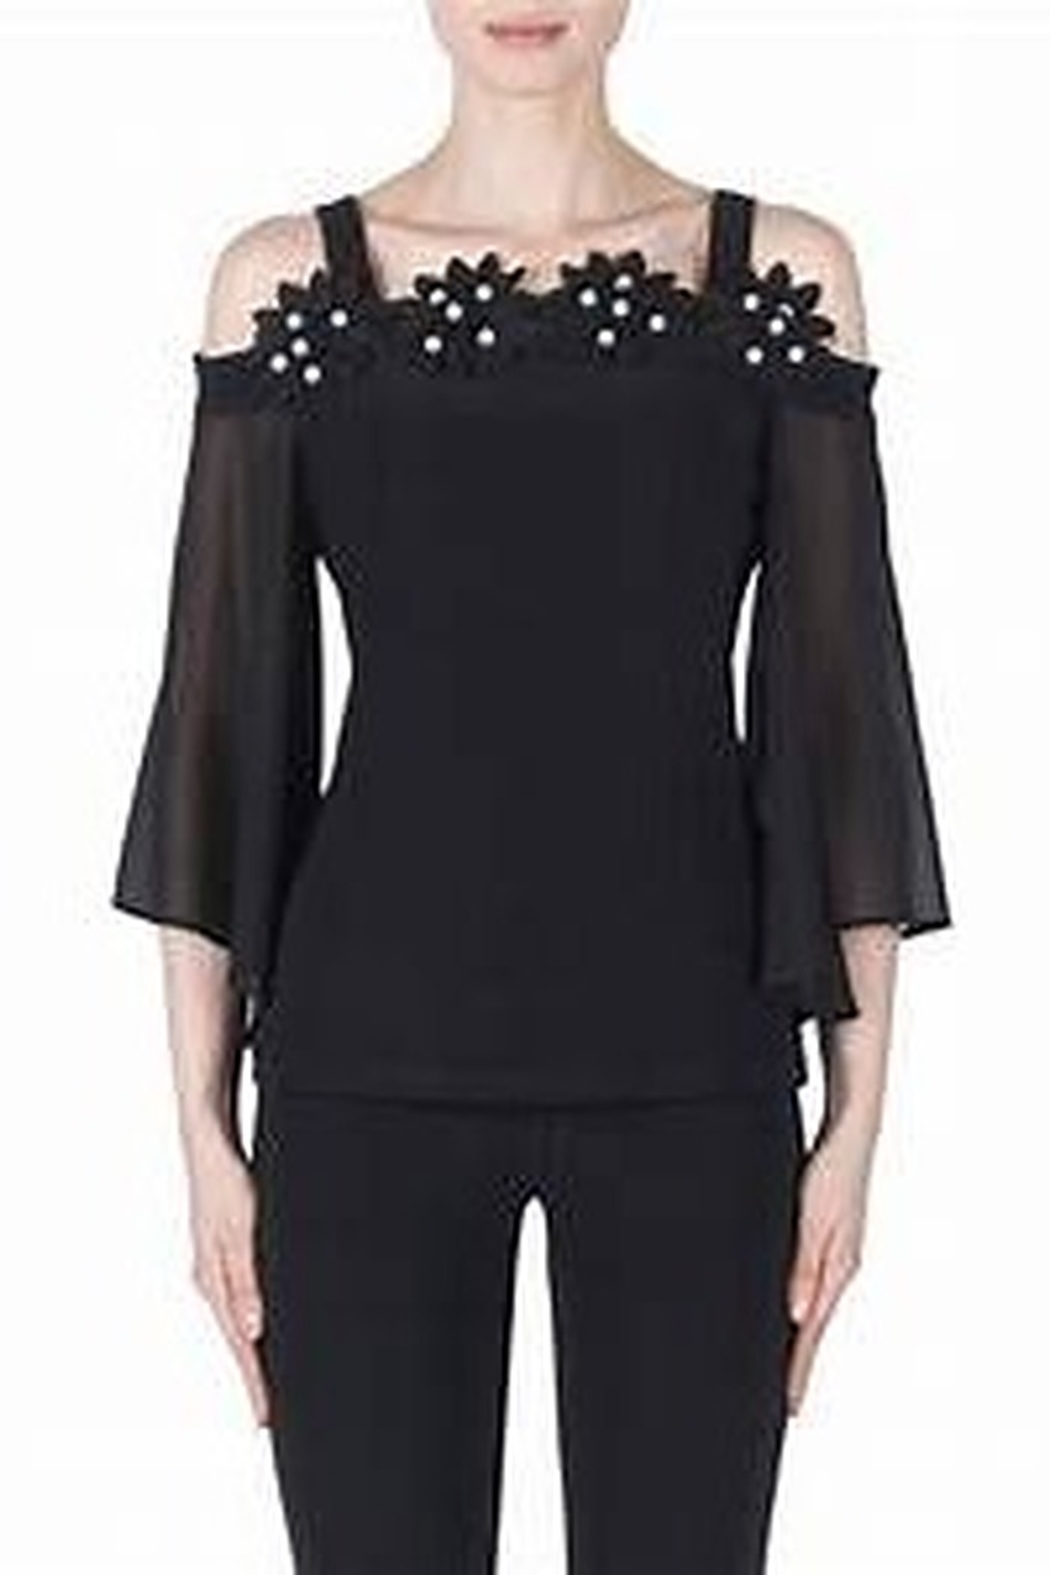 Joseph Ribkoff fitted black top with pearl accented flowers - Main Image